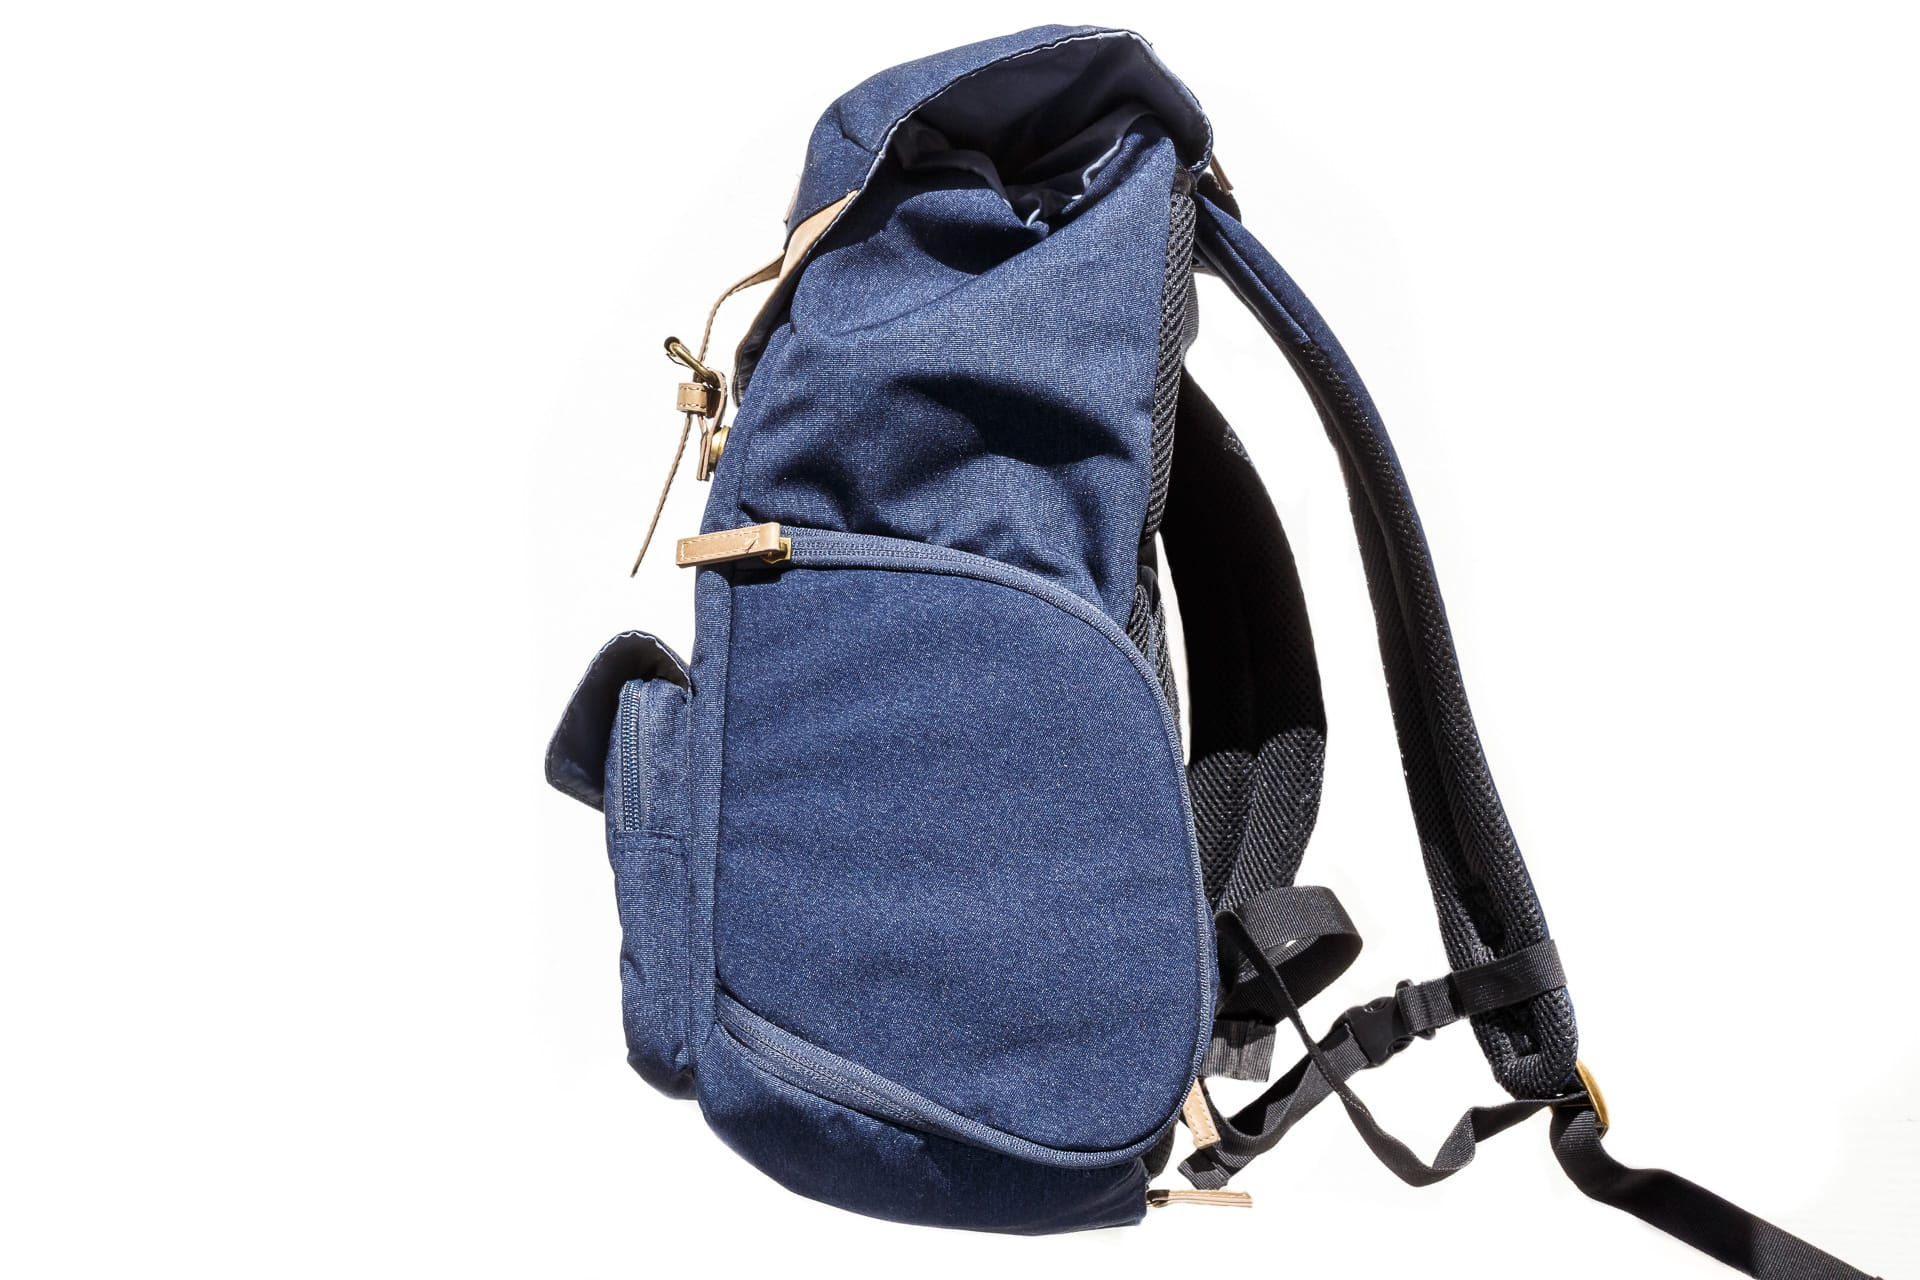 K&F Concept Camera Backpack Review 1